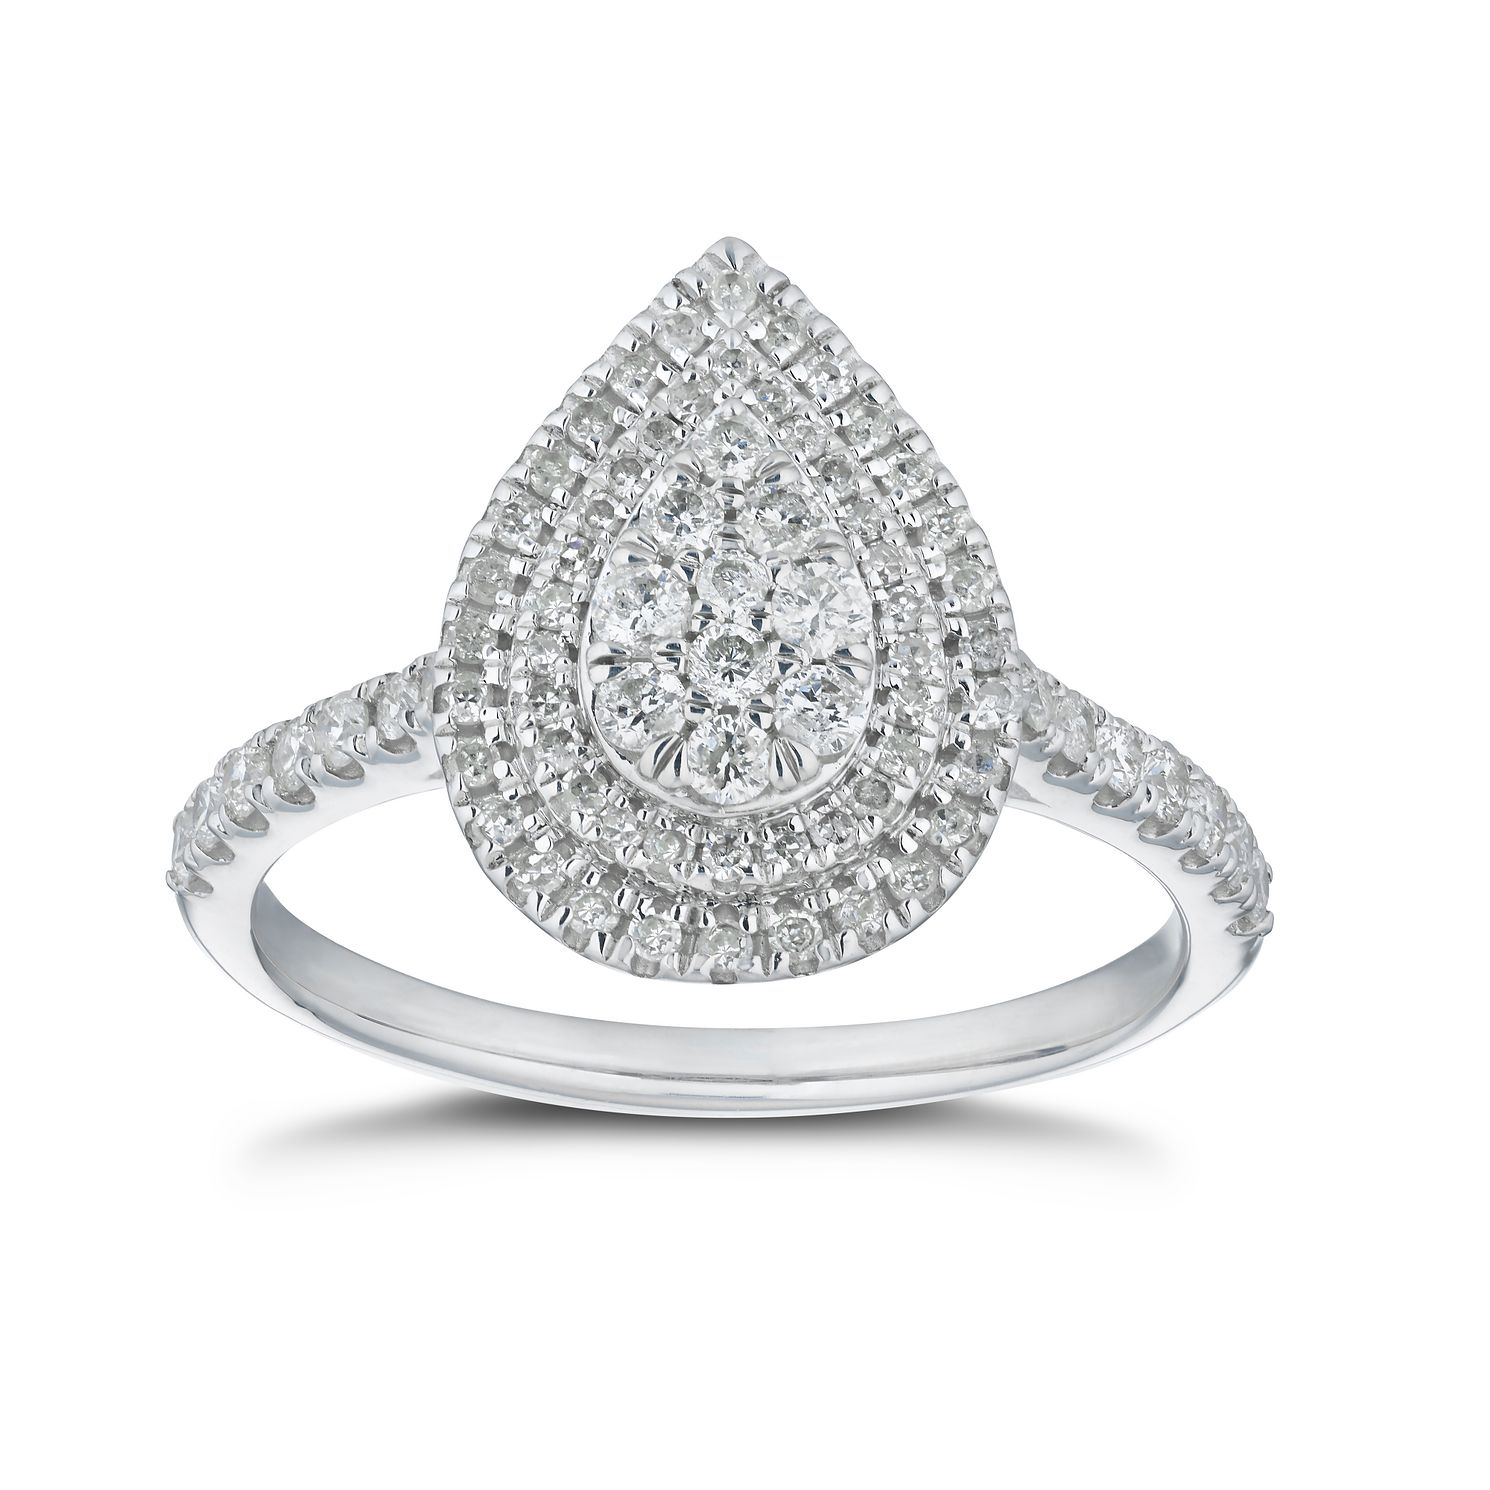 9ct White Gold 1/2ct Diamond Pear Shaped Cluster Ring - Product number 5860784